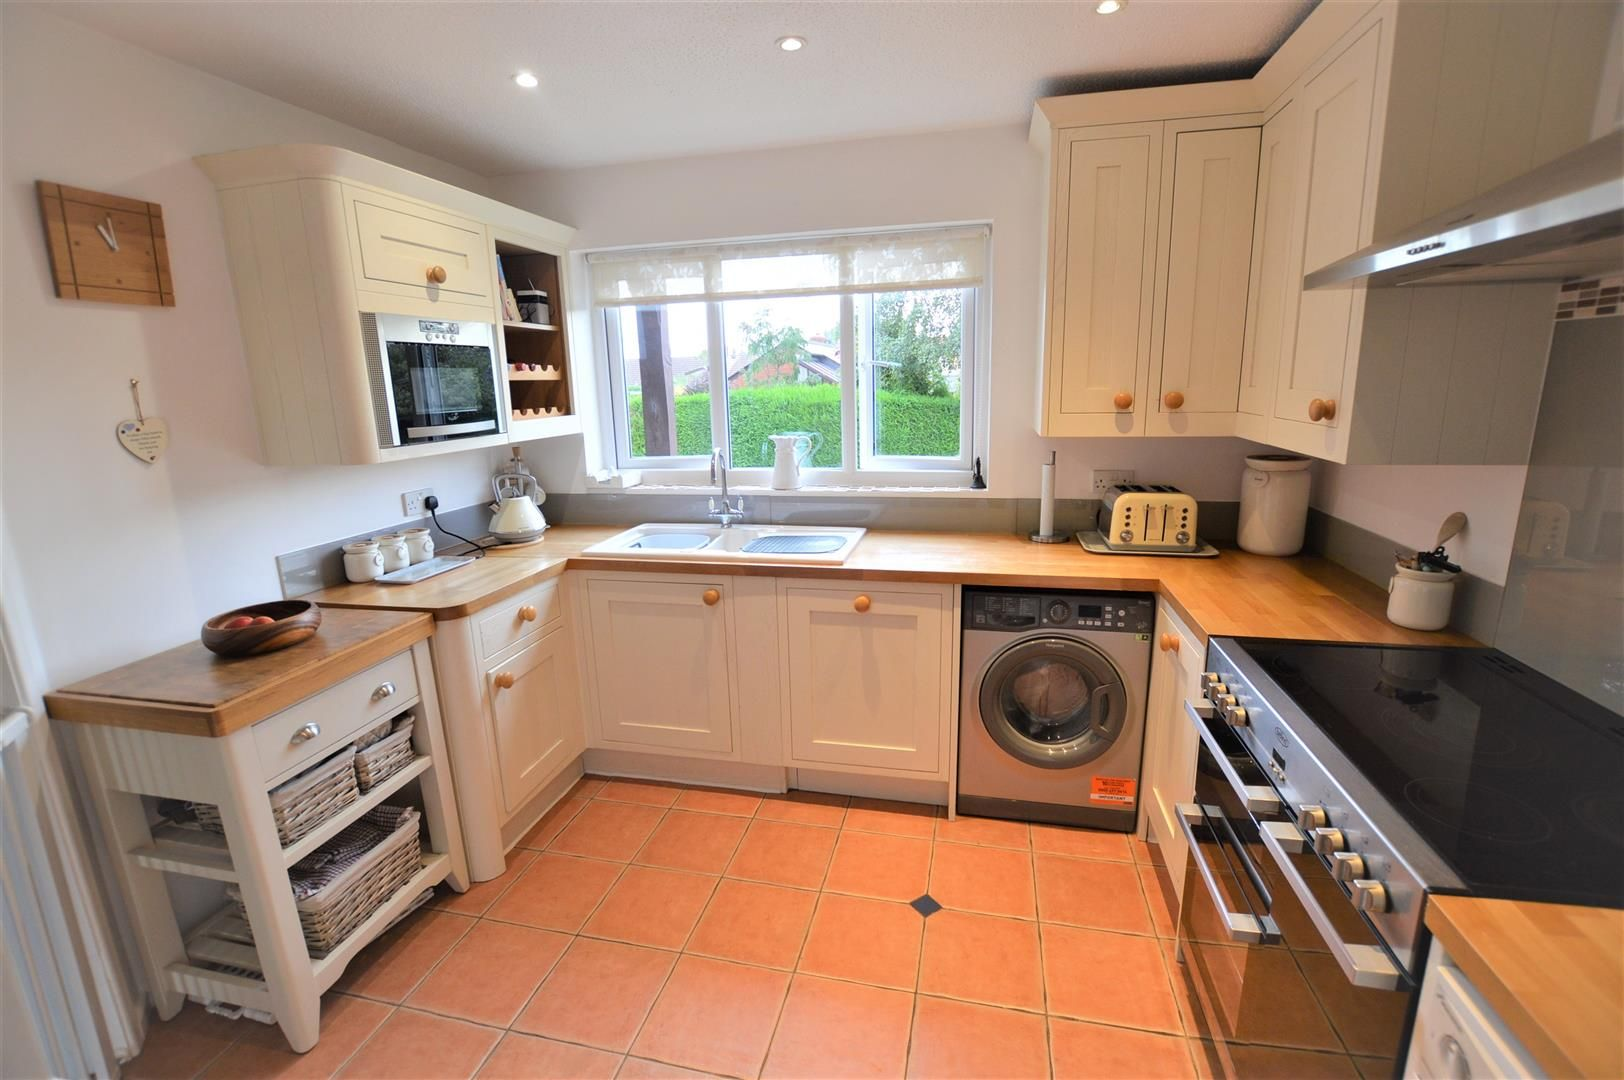 4 bed semi-detached for sale in Luston 2